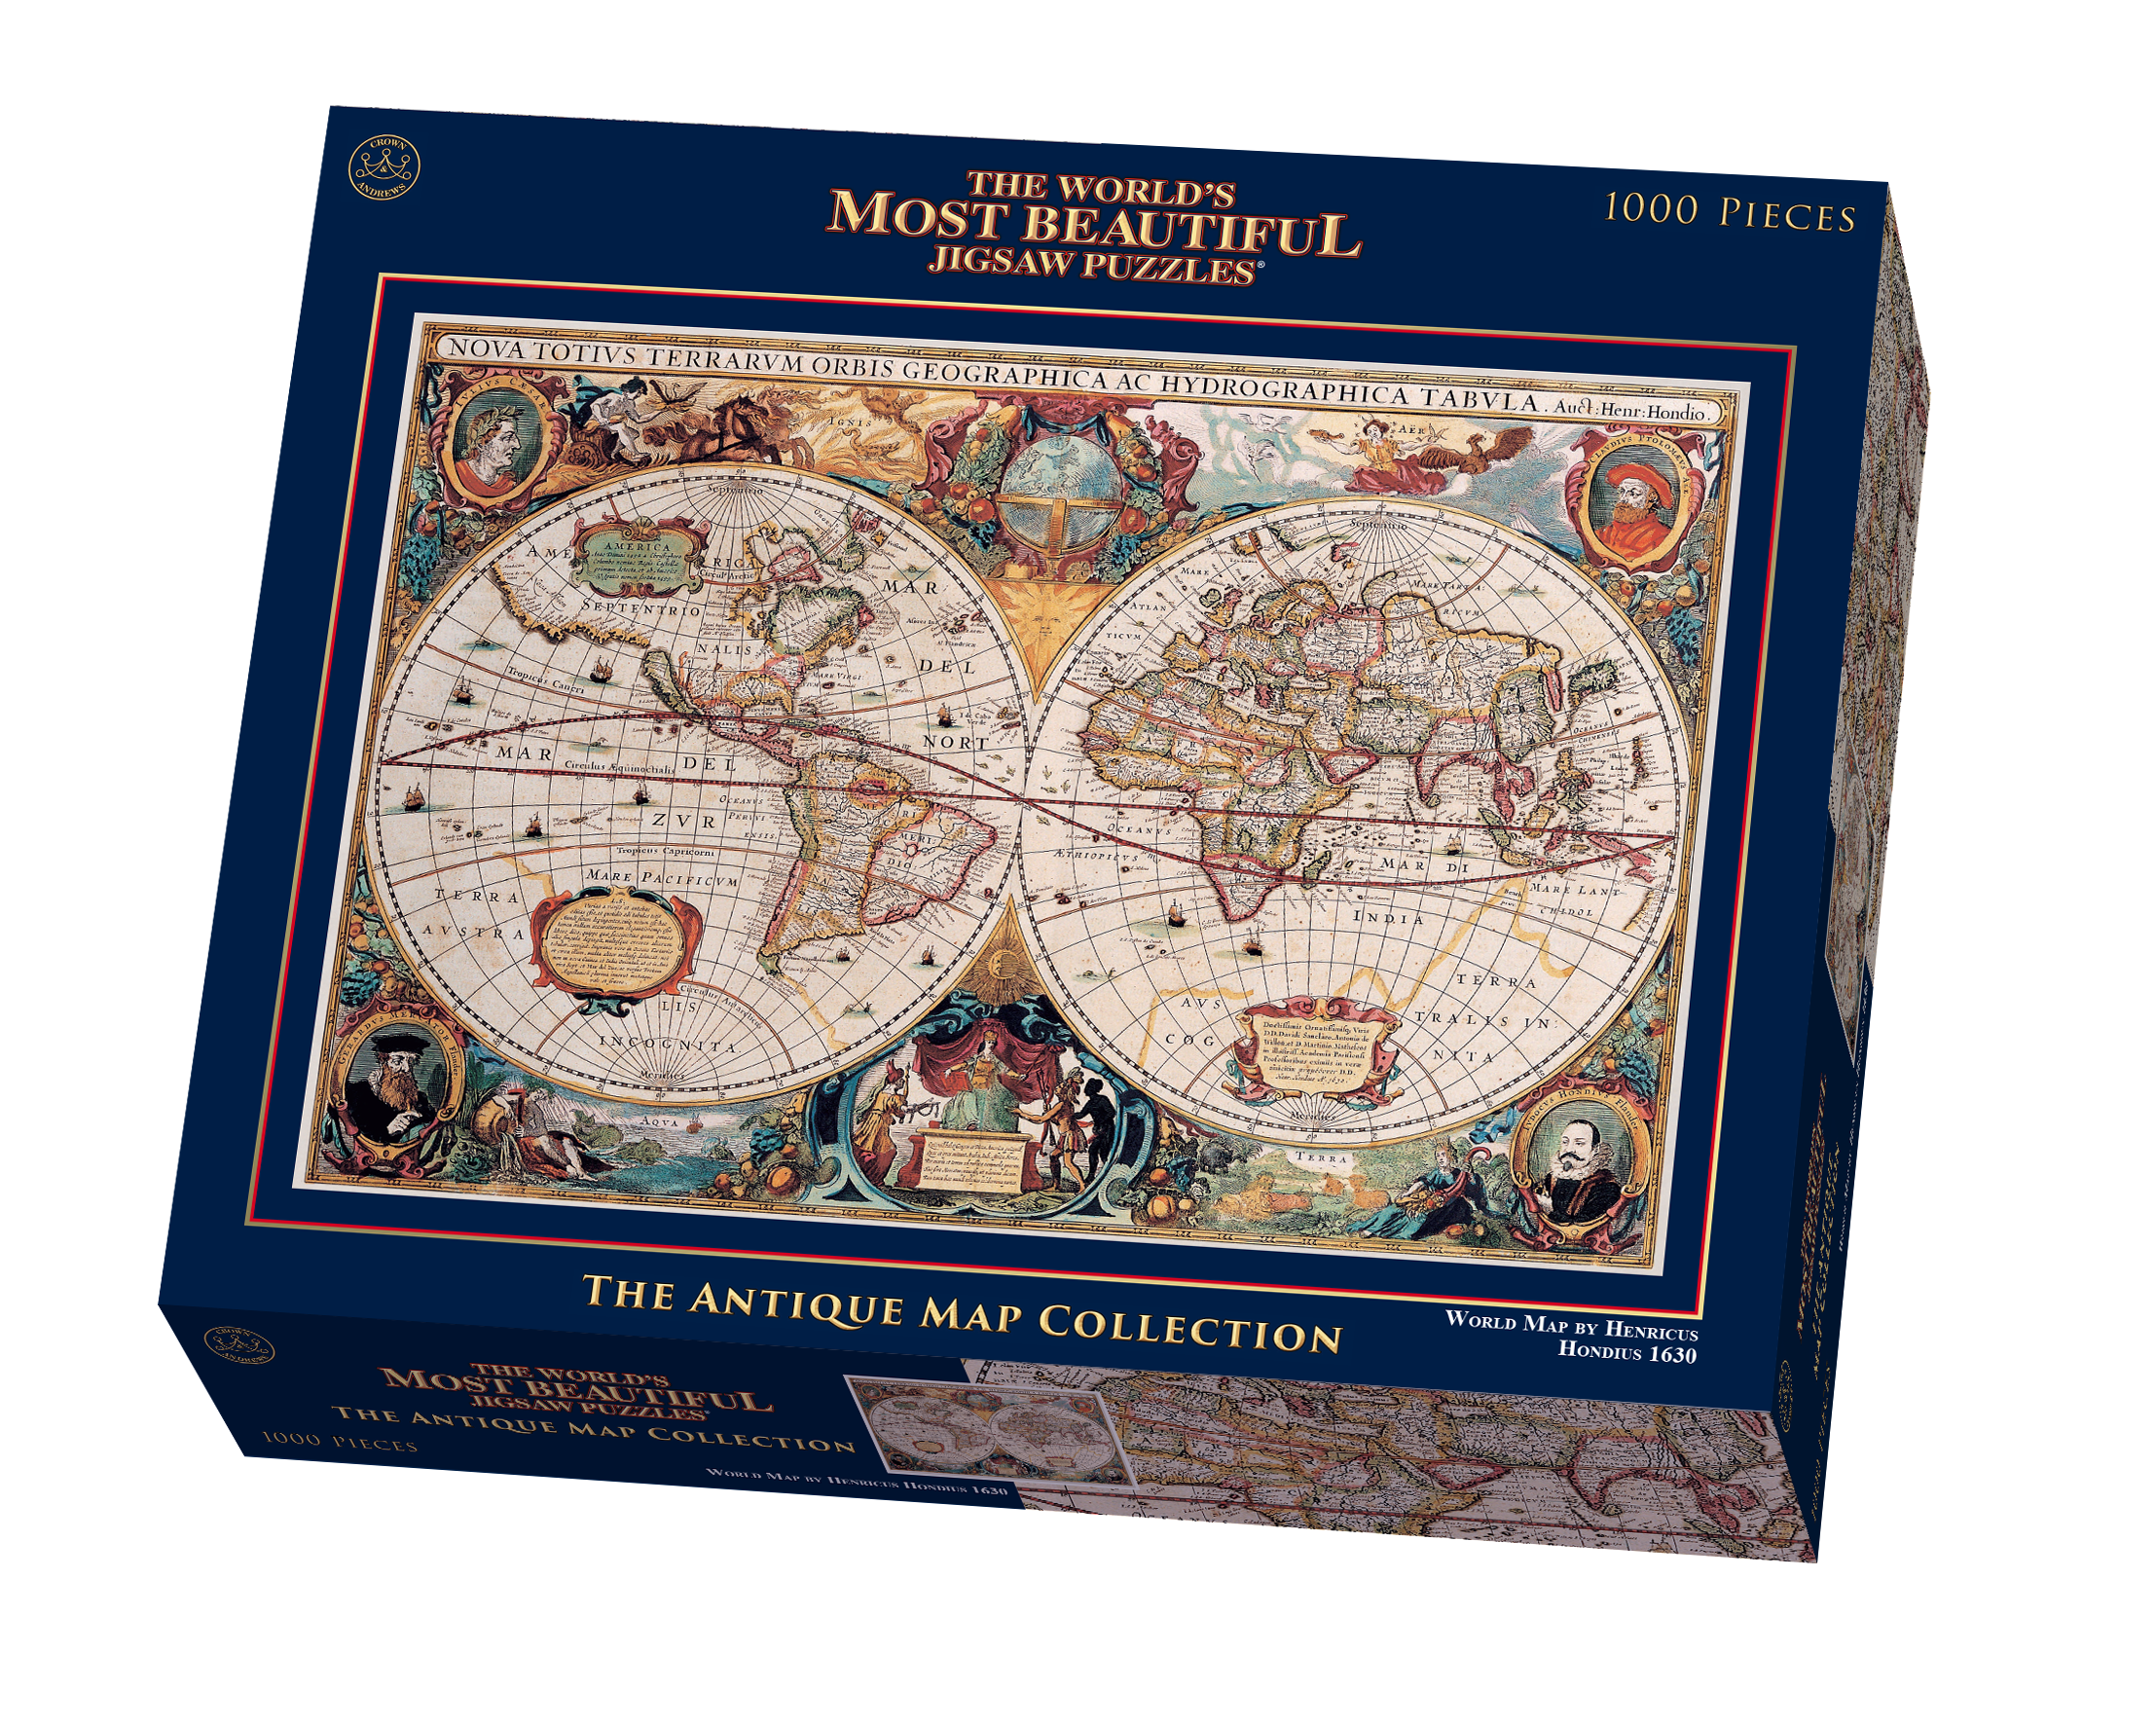 The worlds most beautiful double hemisphere world map by henricus the worlds most beautiful double hemisphere world map by henricus hondius jigsaw puzzle gumiabroncs Gallery